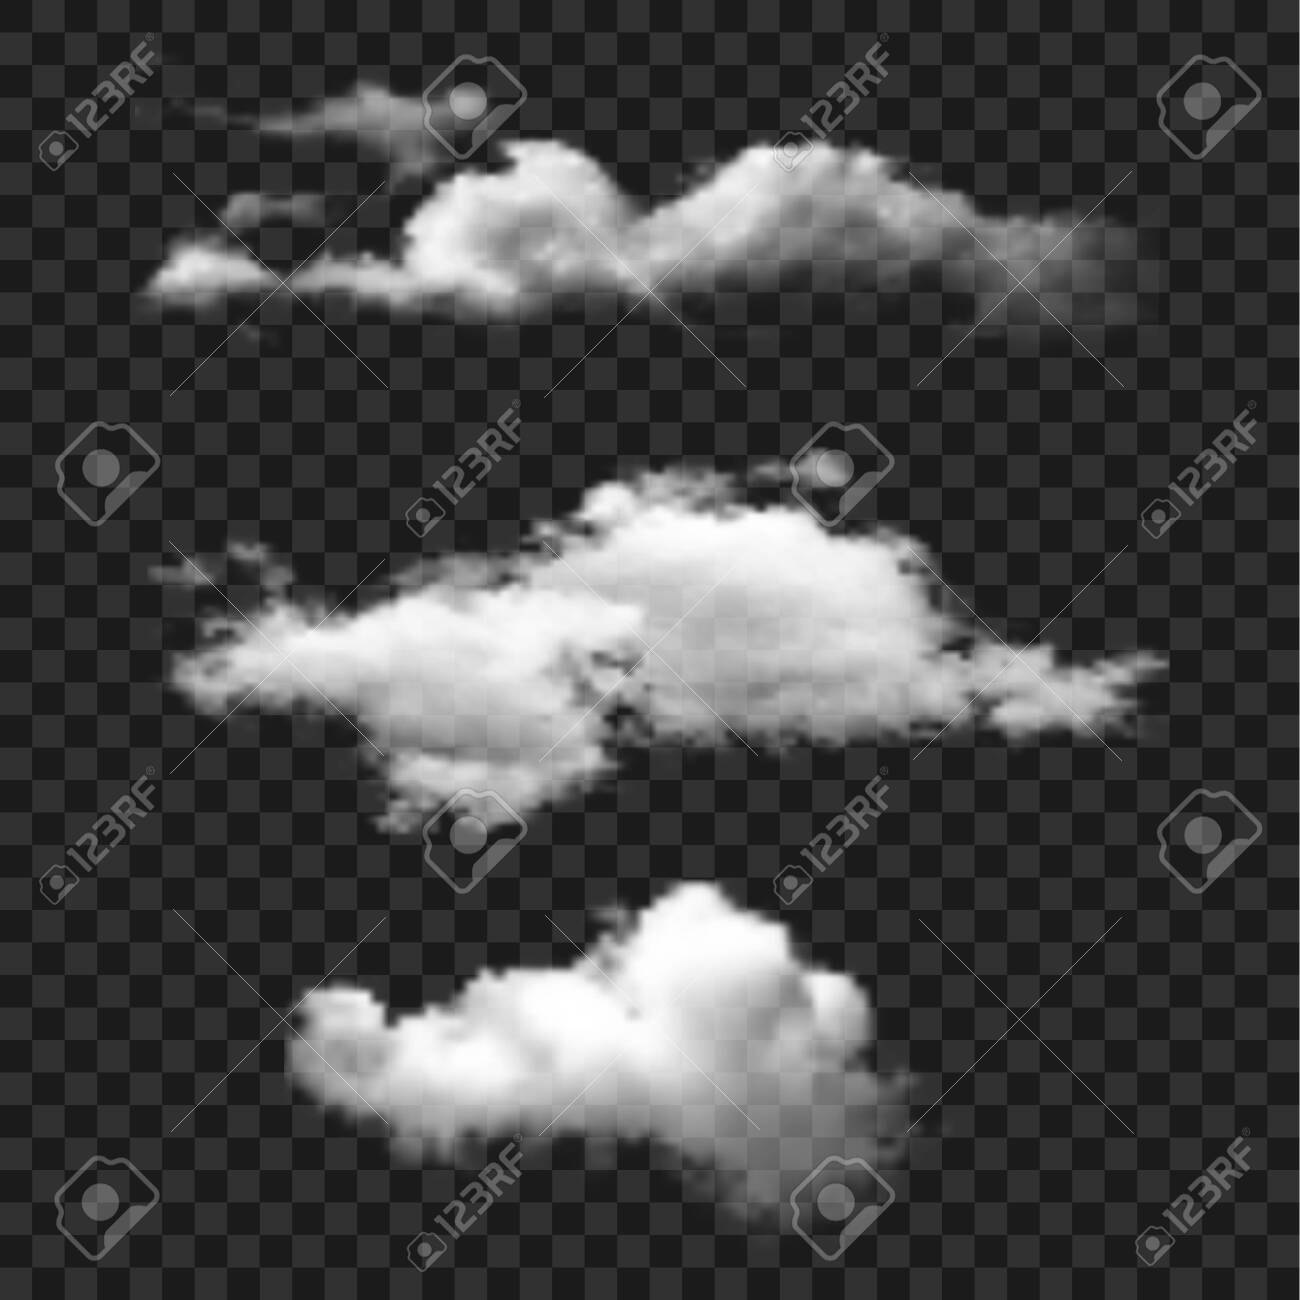 Cloud set vector icon. Clouds on transparent background. Simple isolated illustration. - 138596319